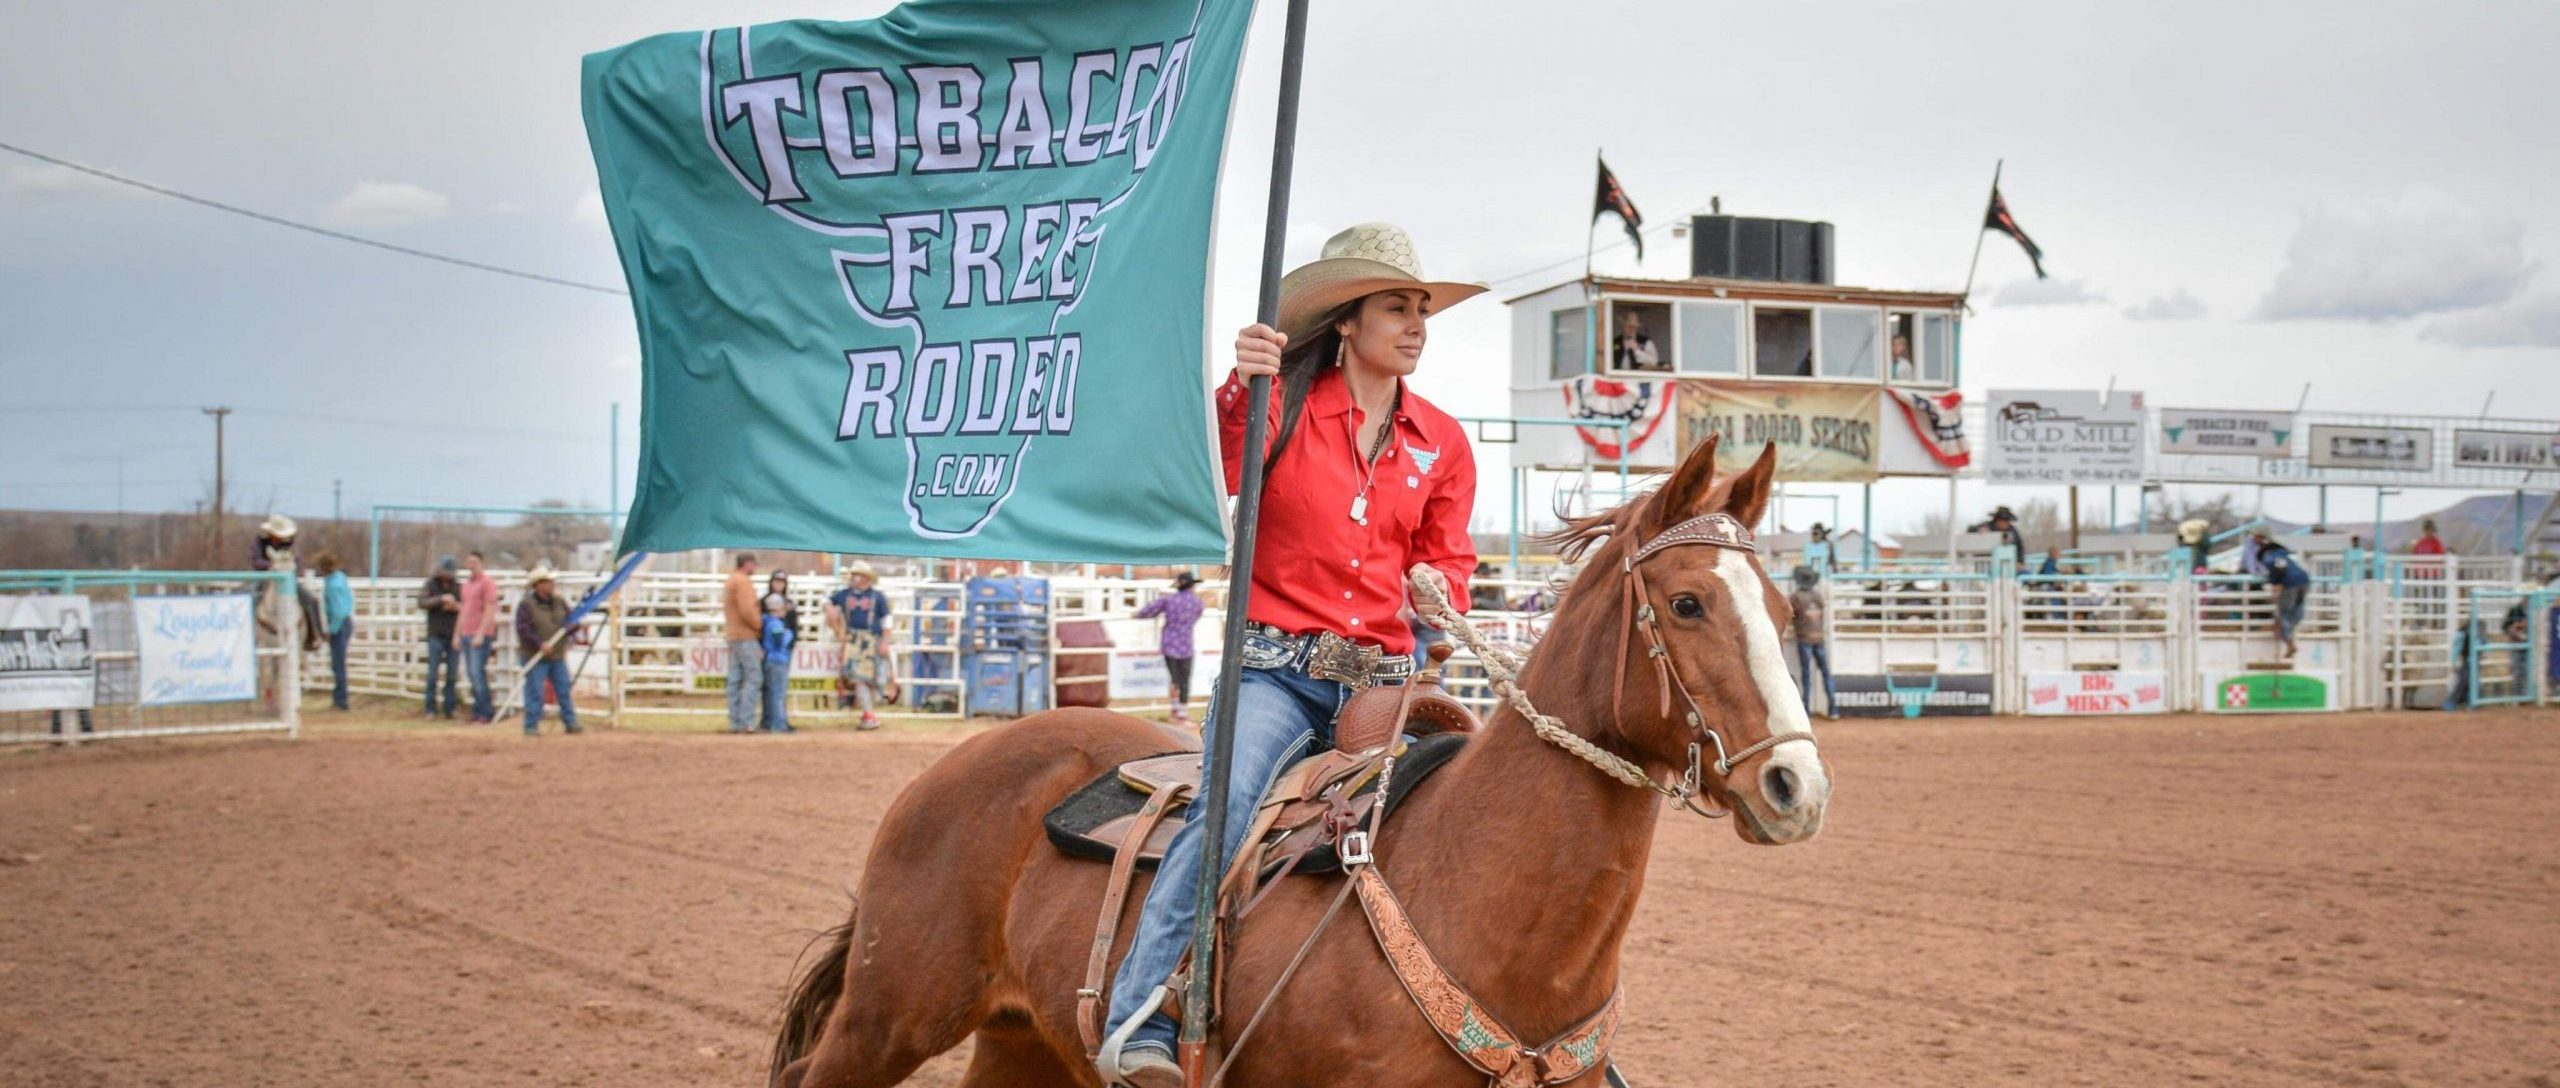 woman riding horse with flag